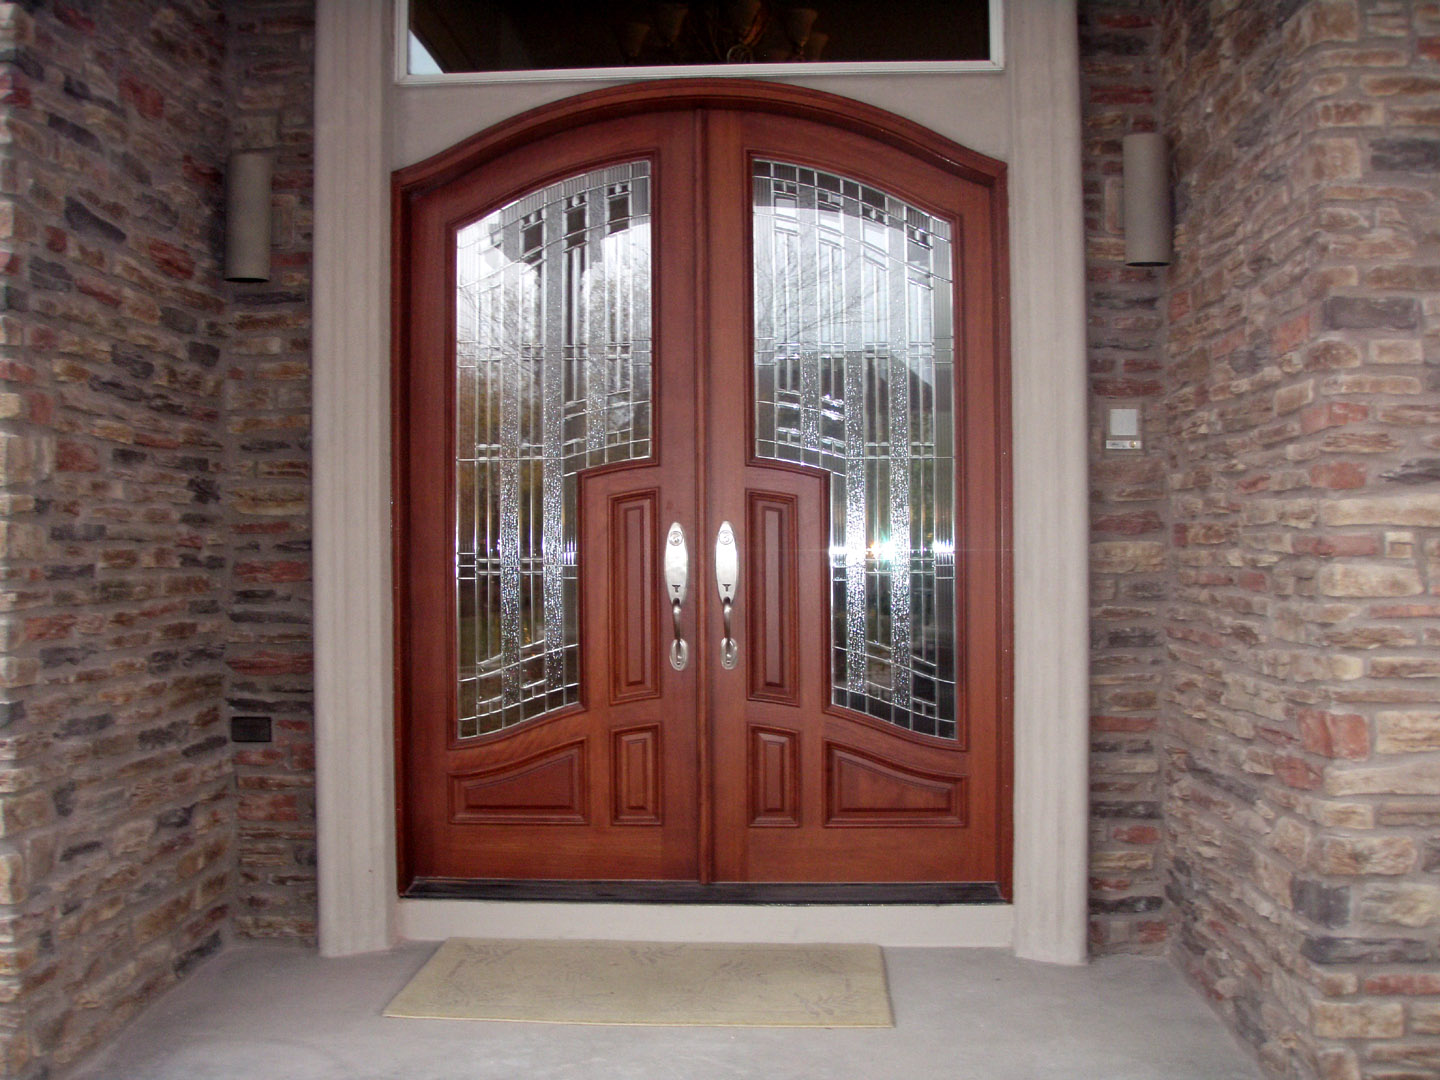 Wood doors front doors entry doors exterior doors for for Wood entry doors